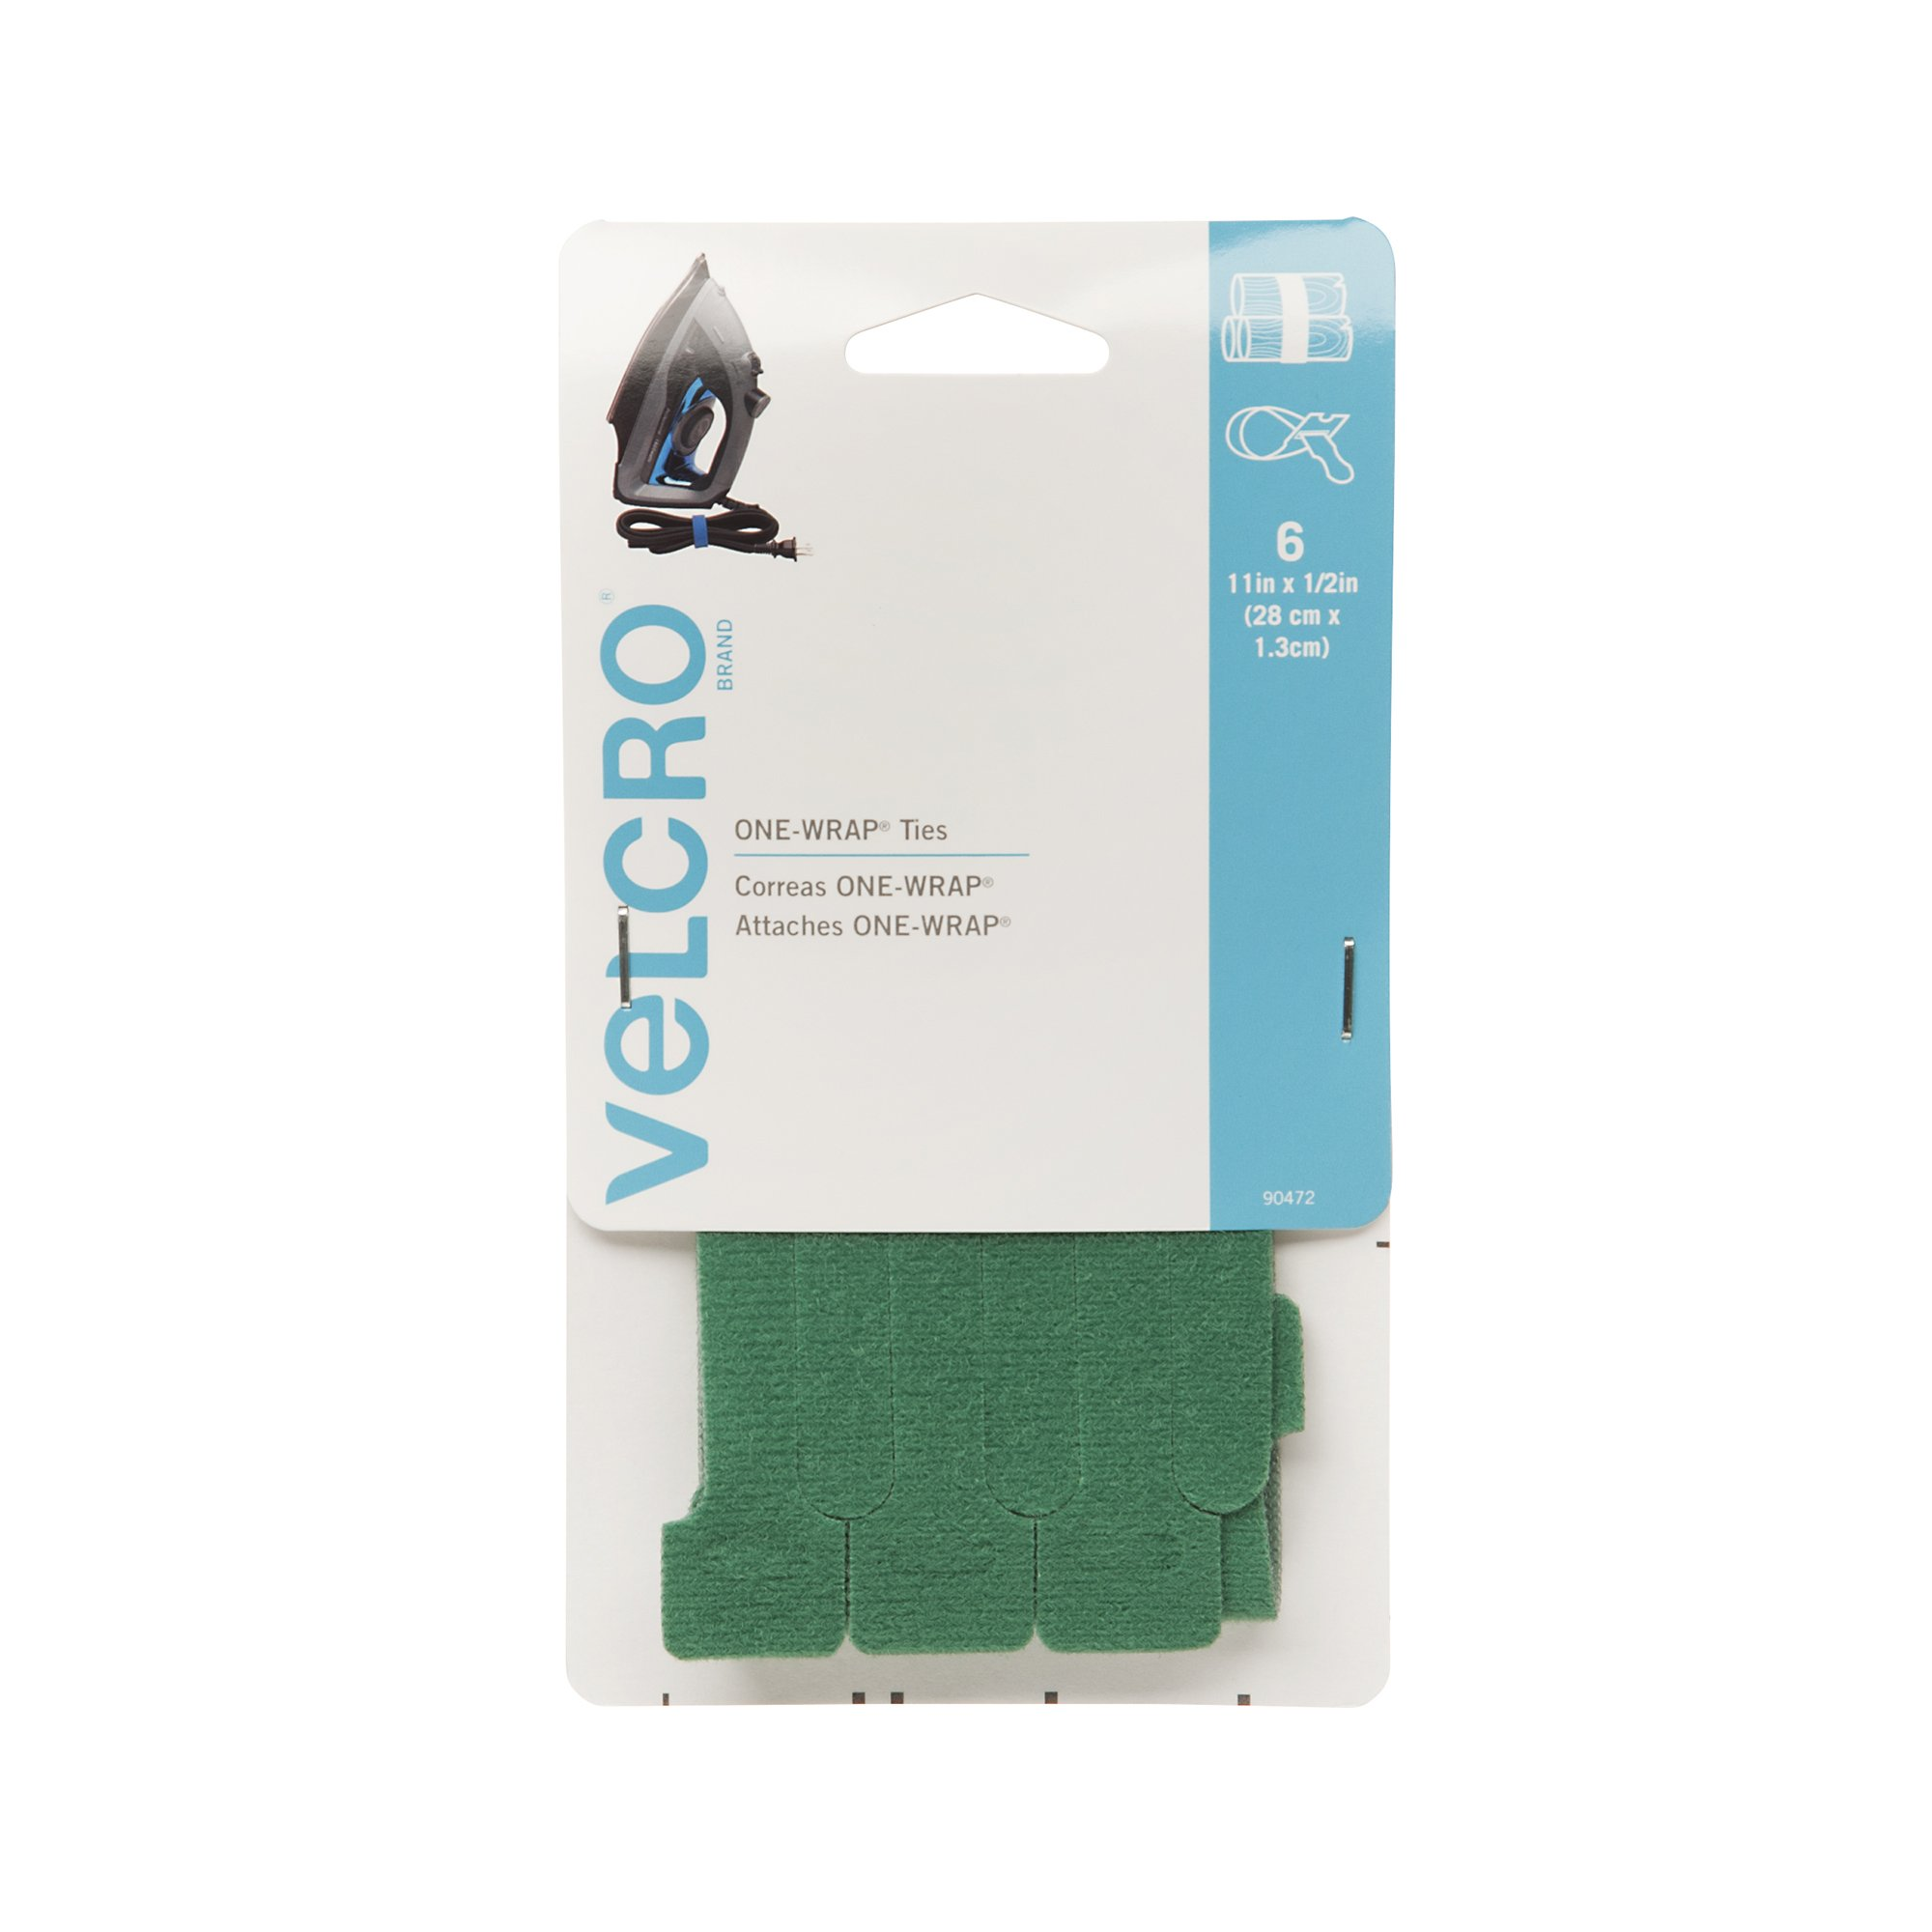 VELCRO Brand ONE-WRAP Ties | For Cables, Wires & Cords | 6 Ct - 11'' x 1/2'' | Green